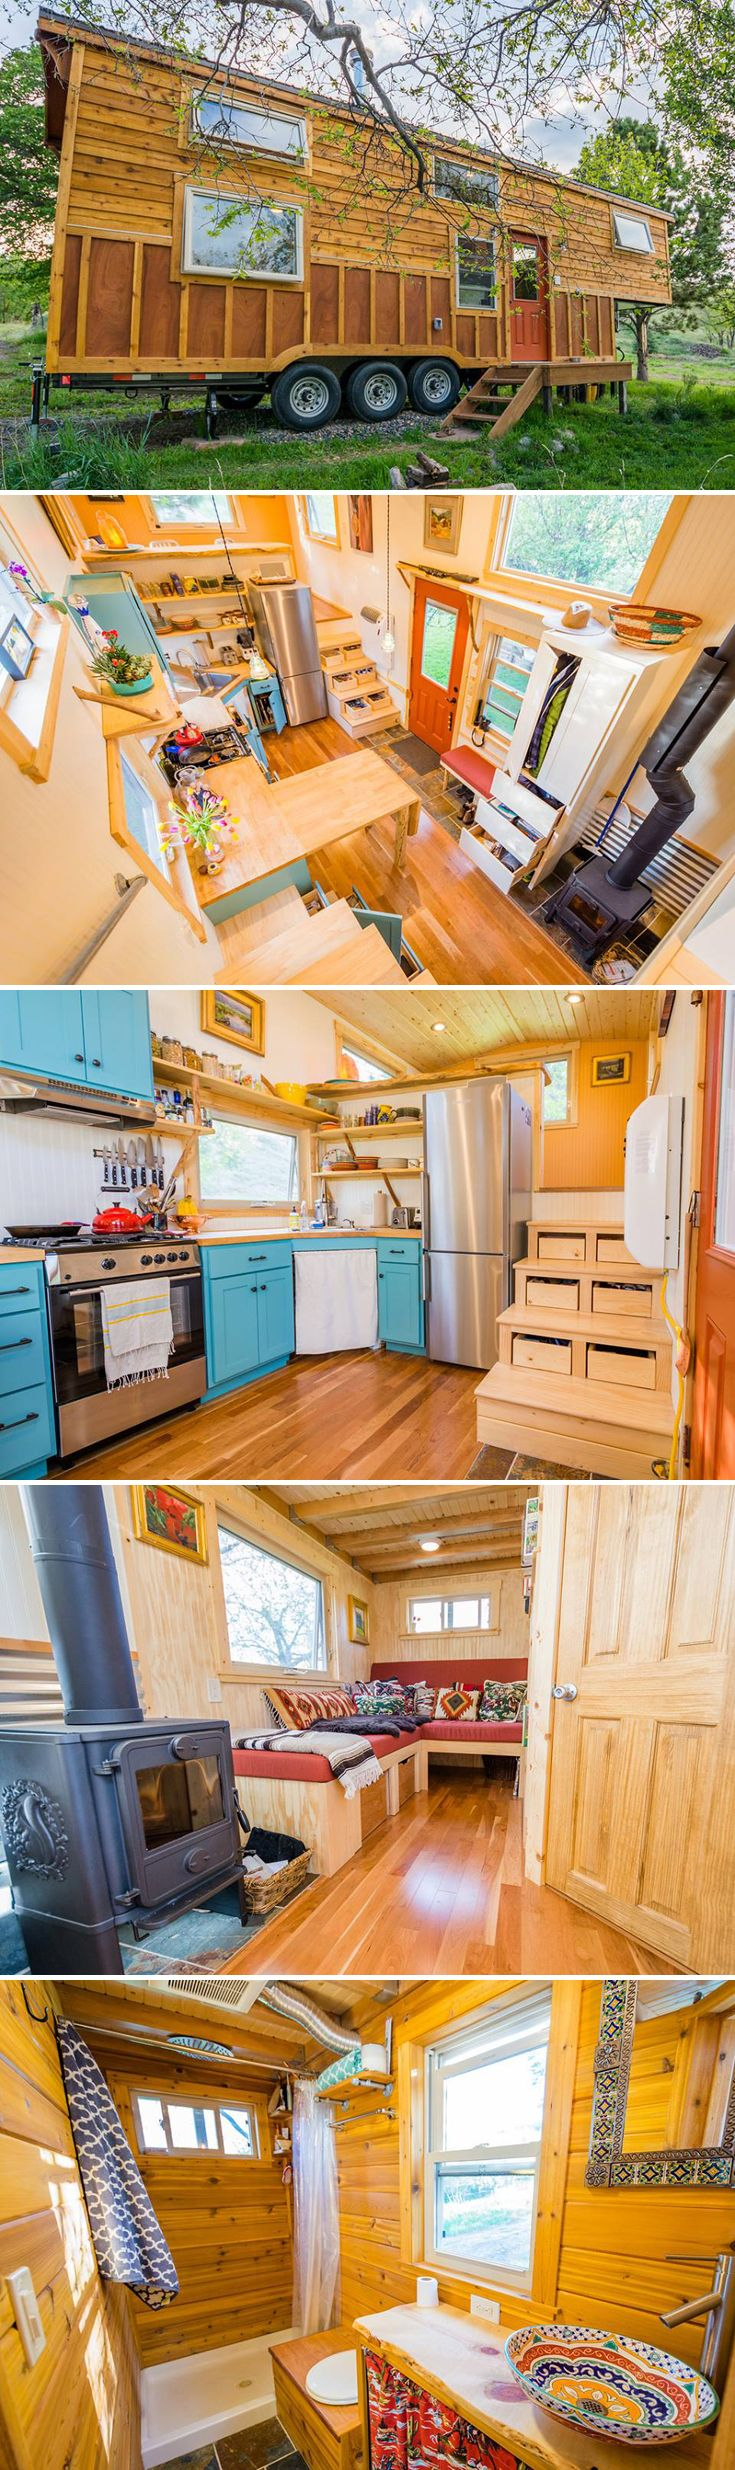 built on an over width 10x33 trailer this gooseneck tiny house